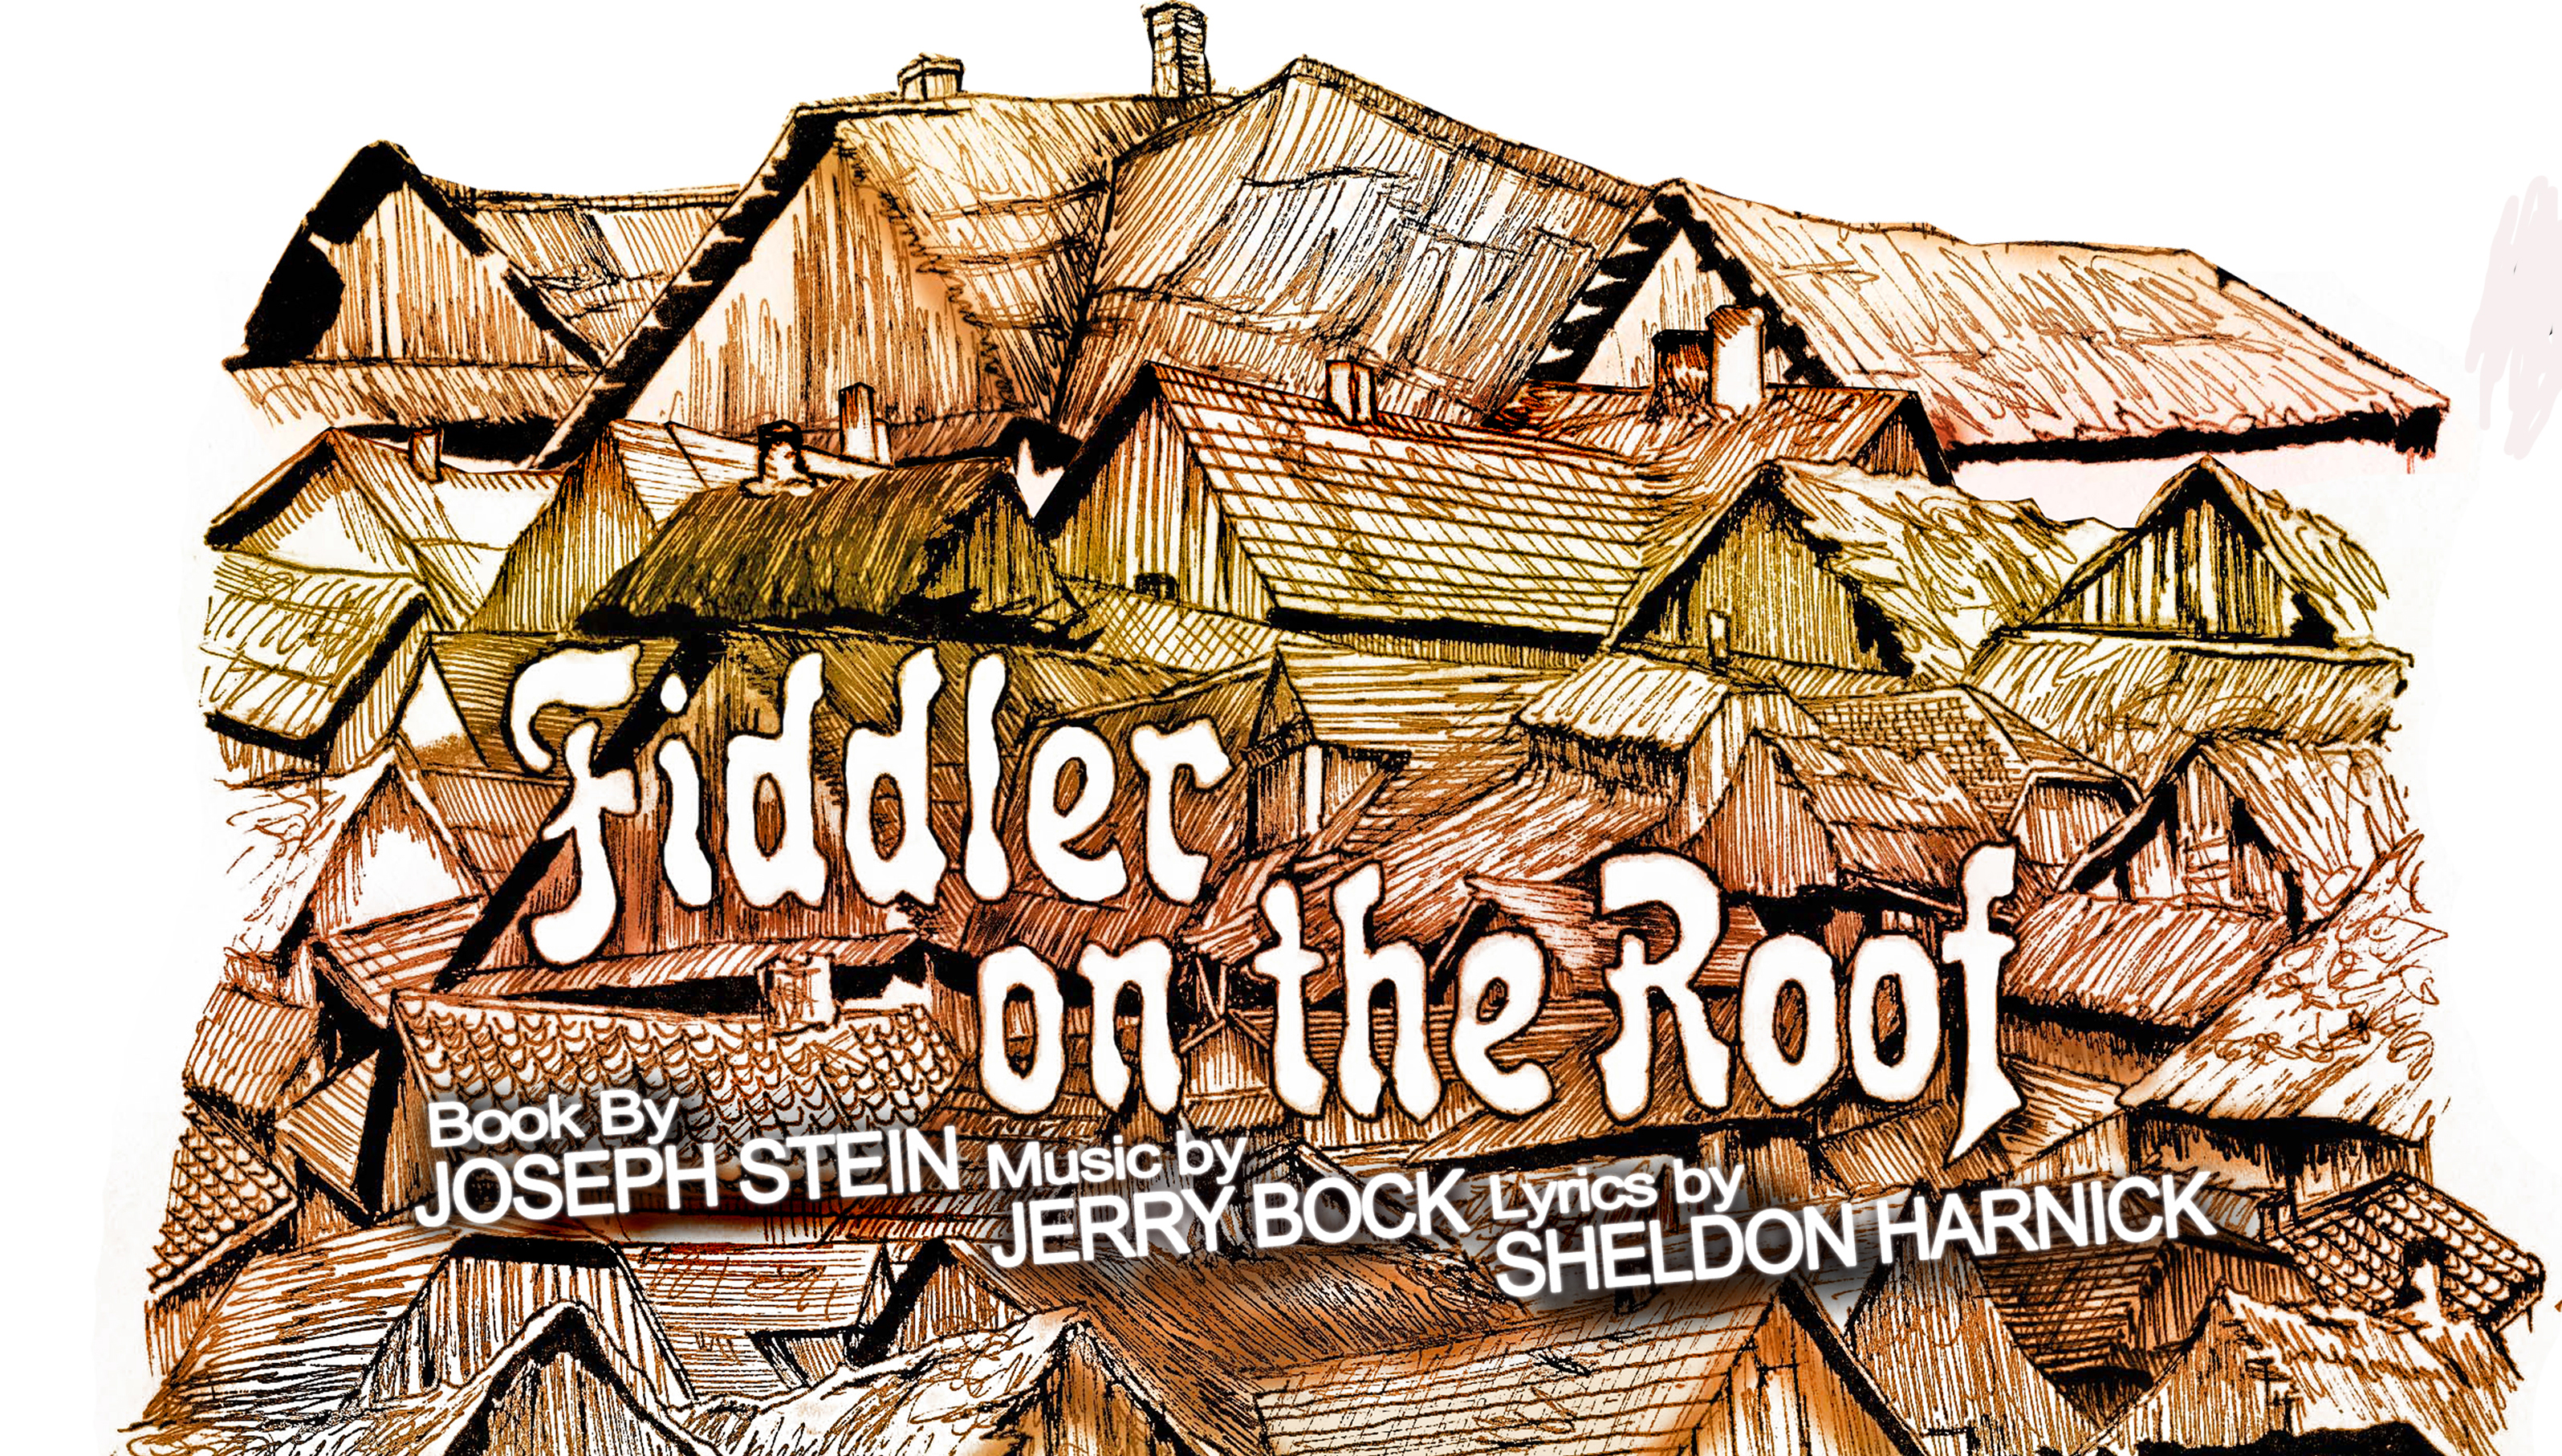 Quot Fiddler On The Roof Quot A Lecture And Brunch October 25